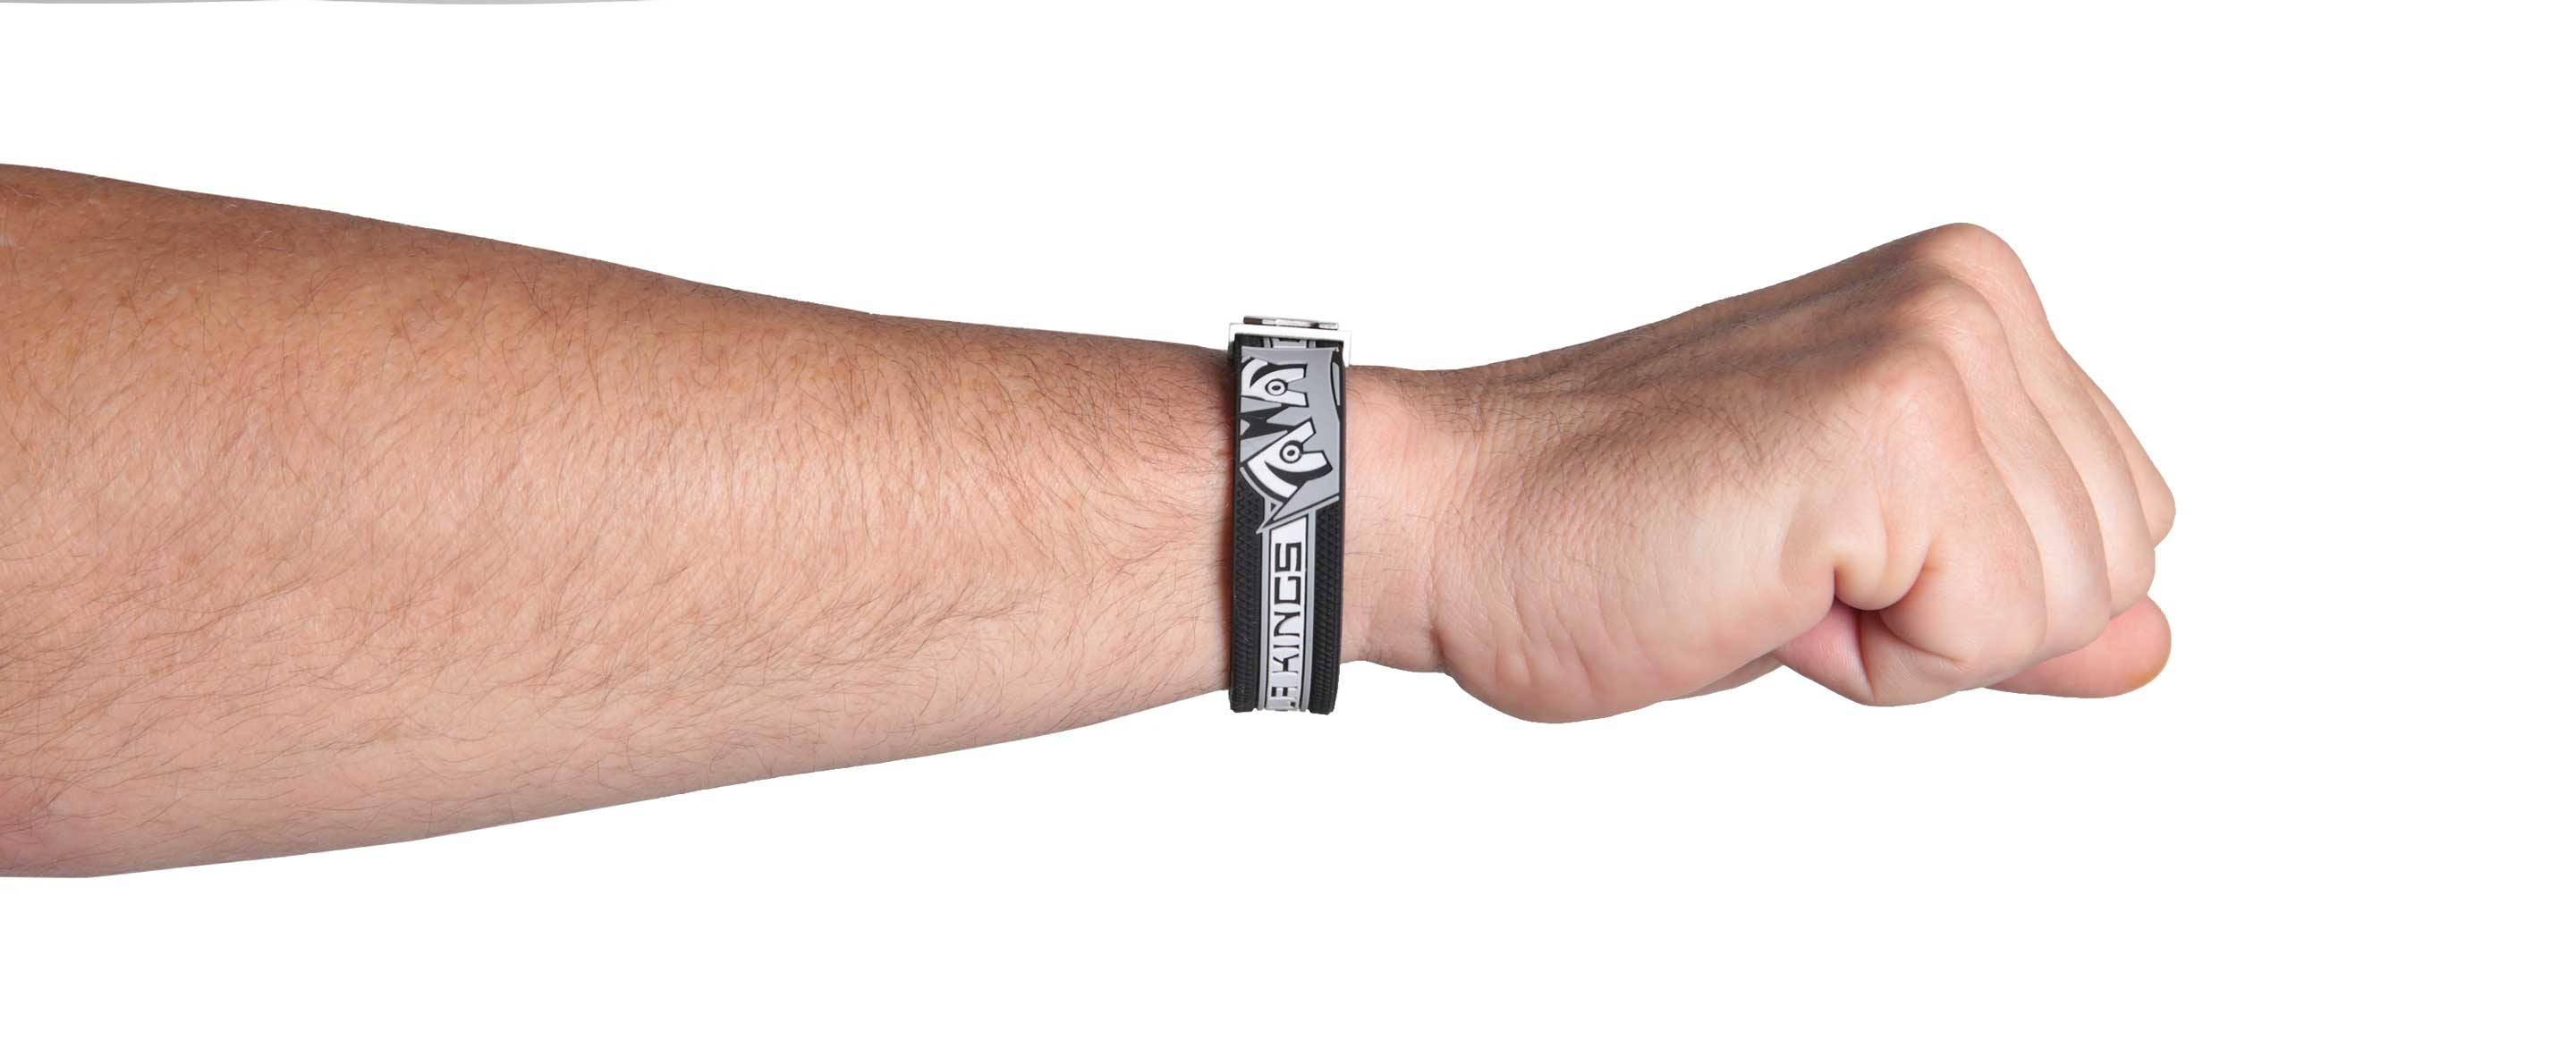 LA Kings bracelet fist